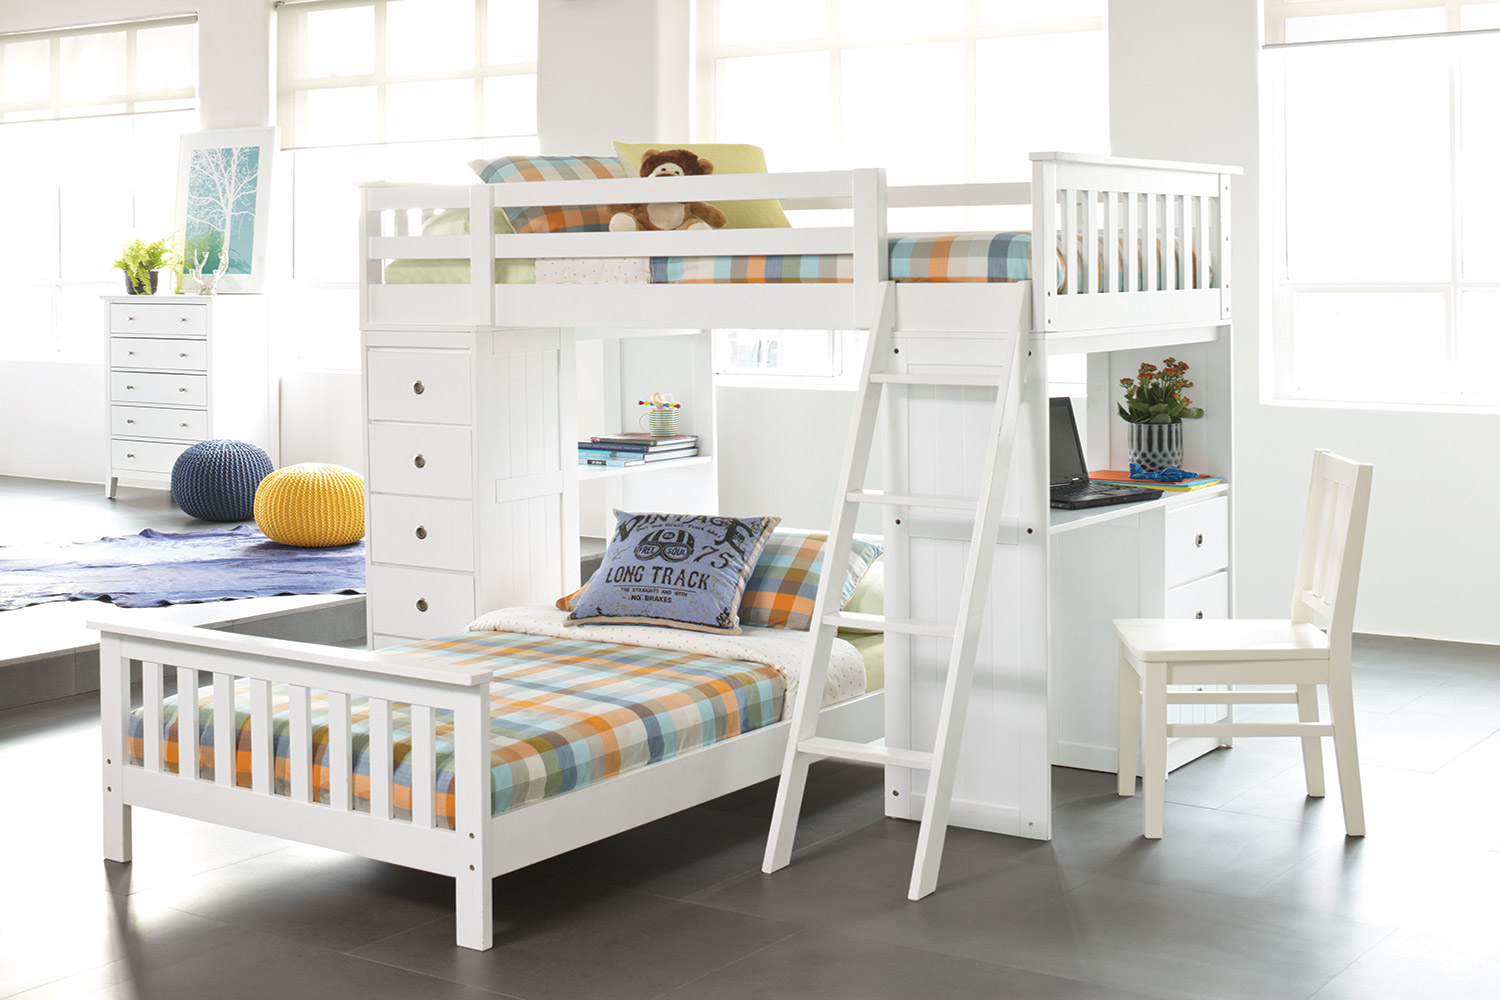 Astro Loft Bunk Bed Frame by John Young Furniture Harvey Norman